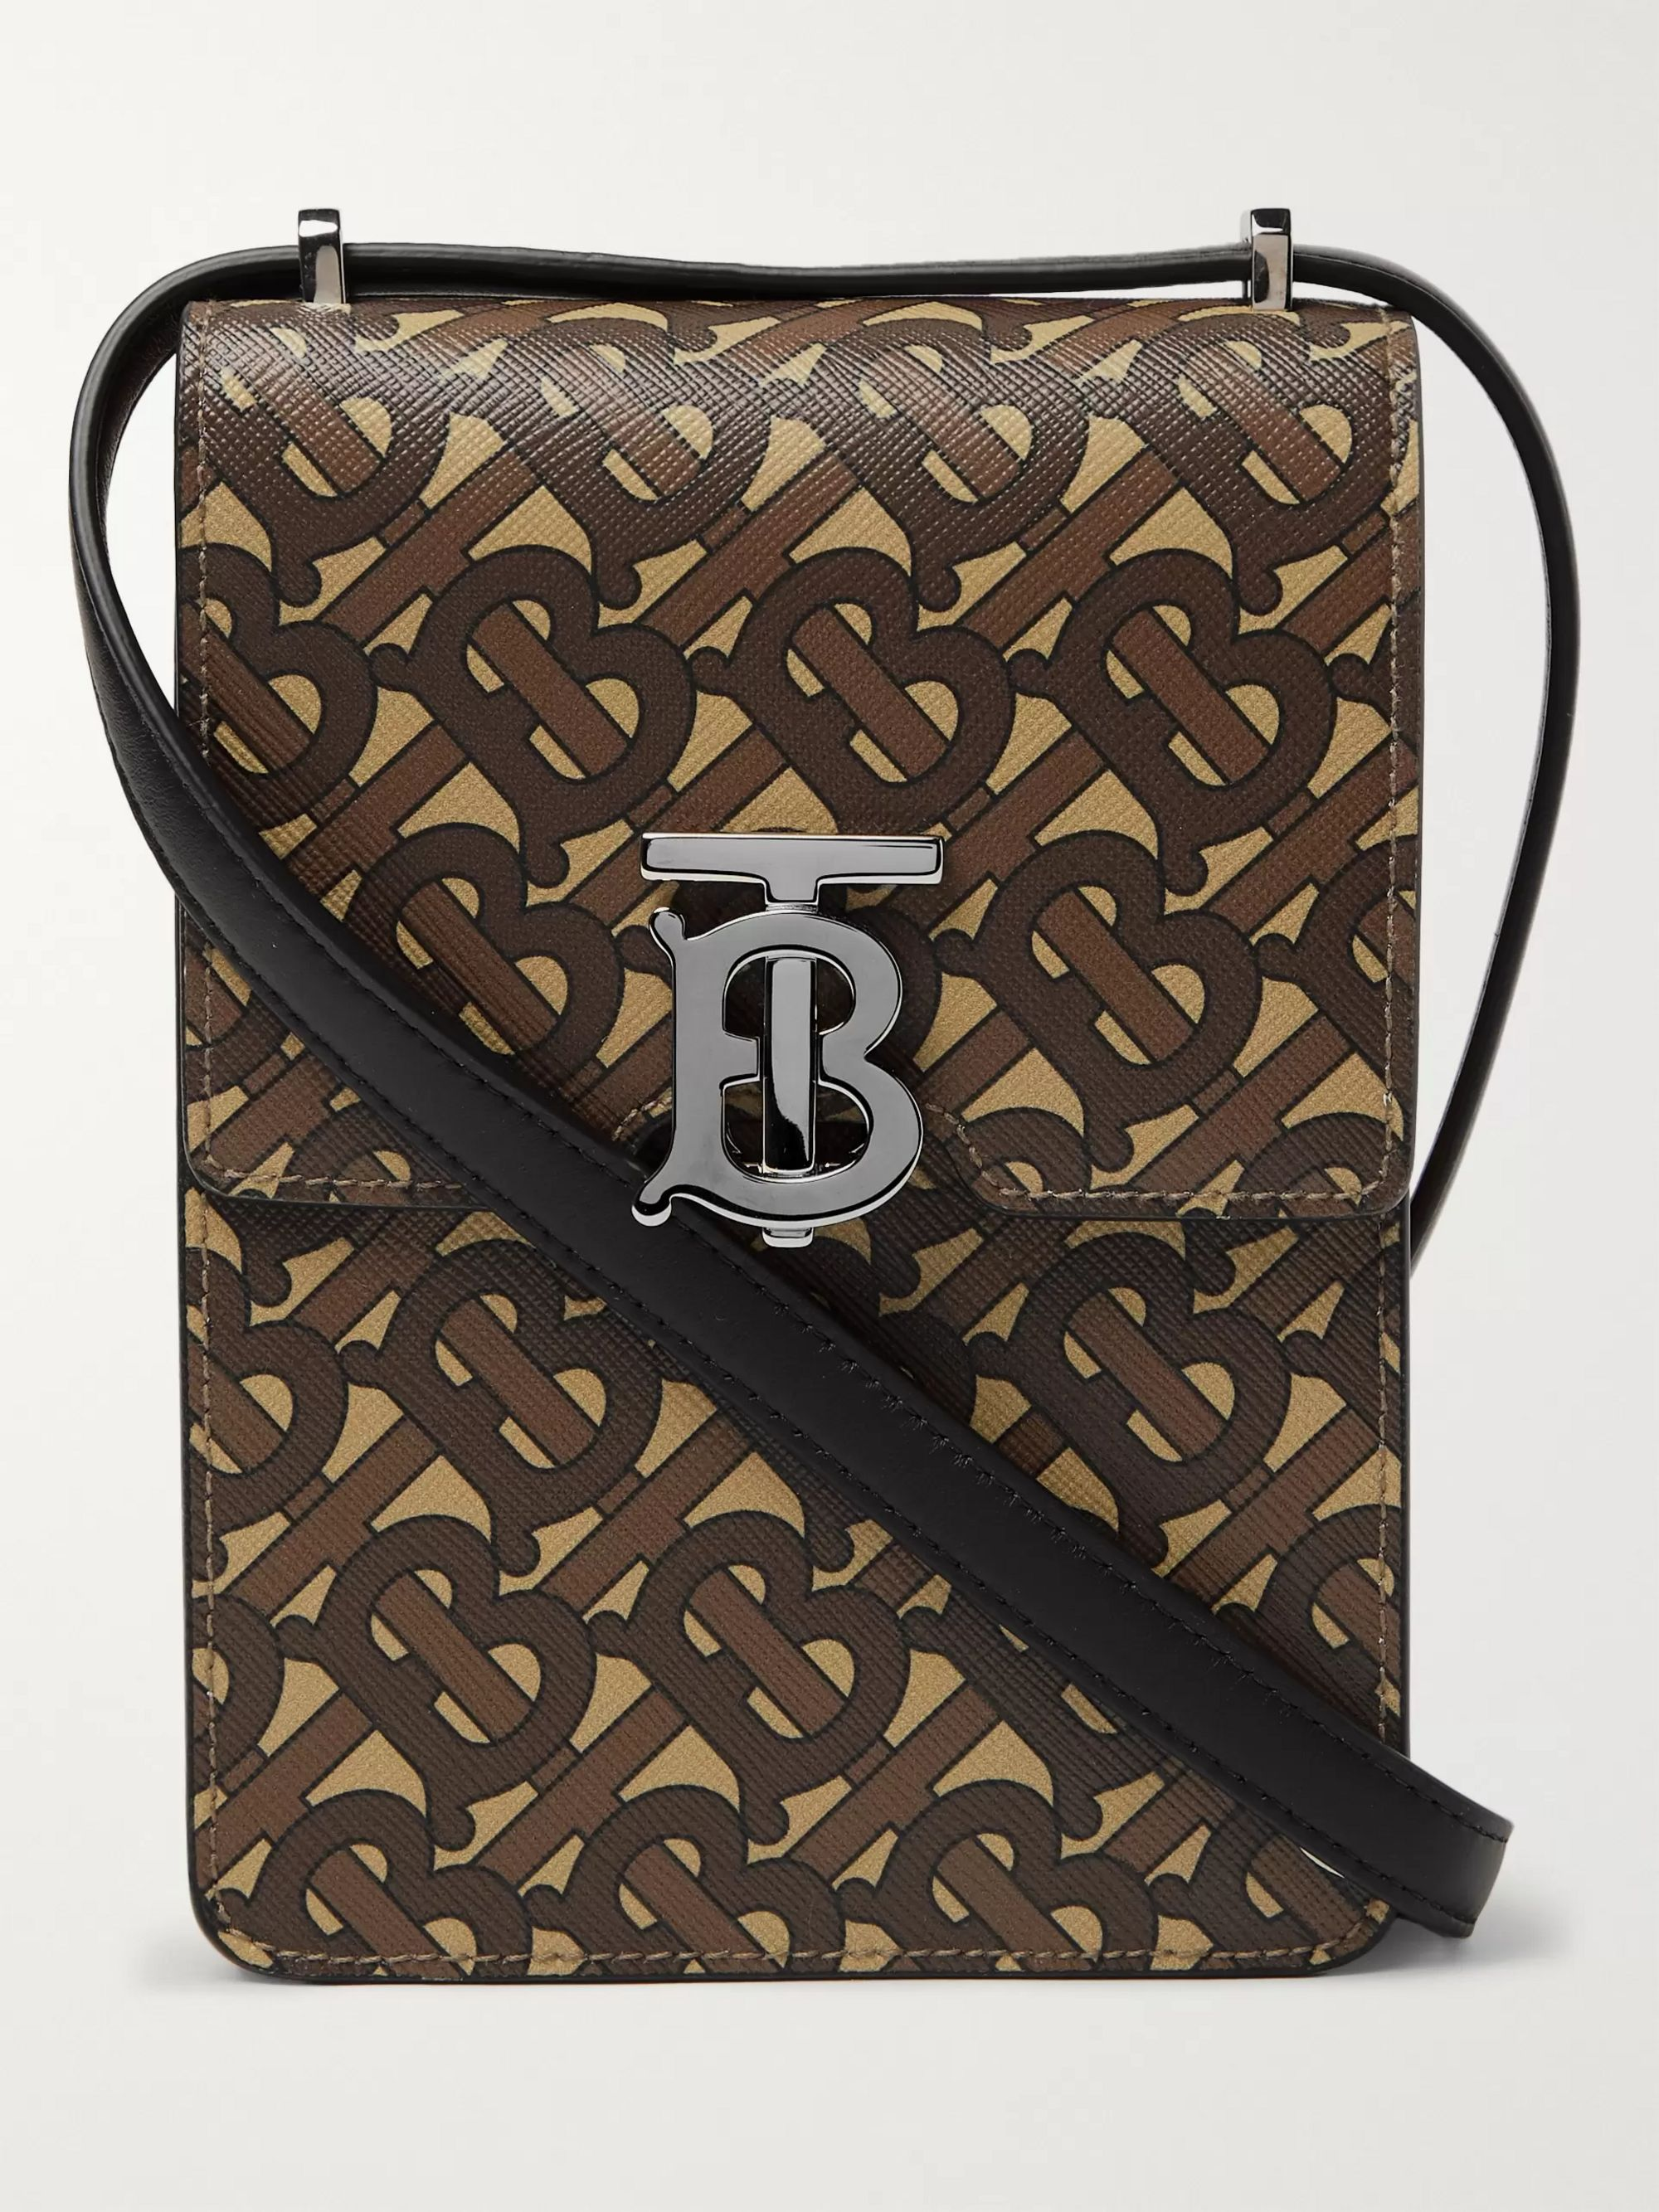 Burberry Leather-Trimmed Monogrammed Coated-Canvas Messenger Bag